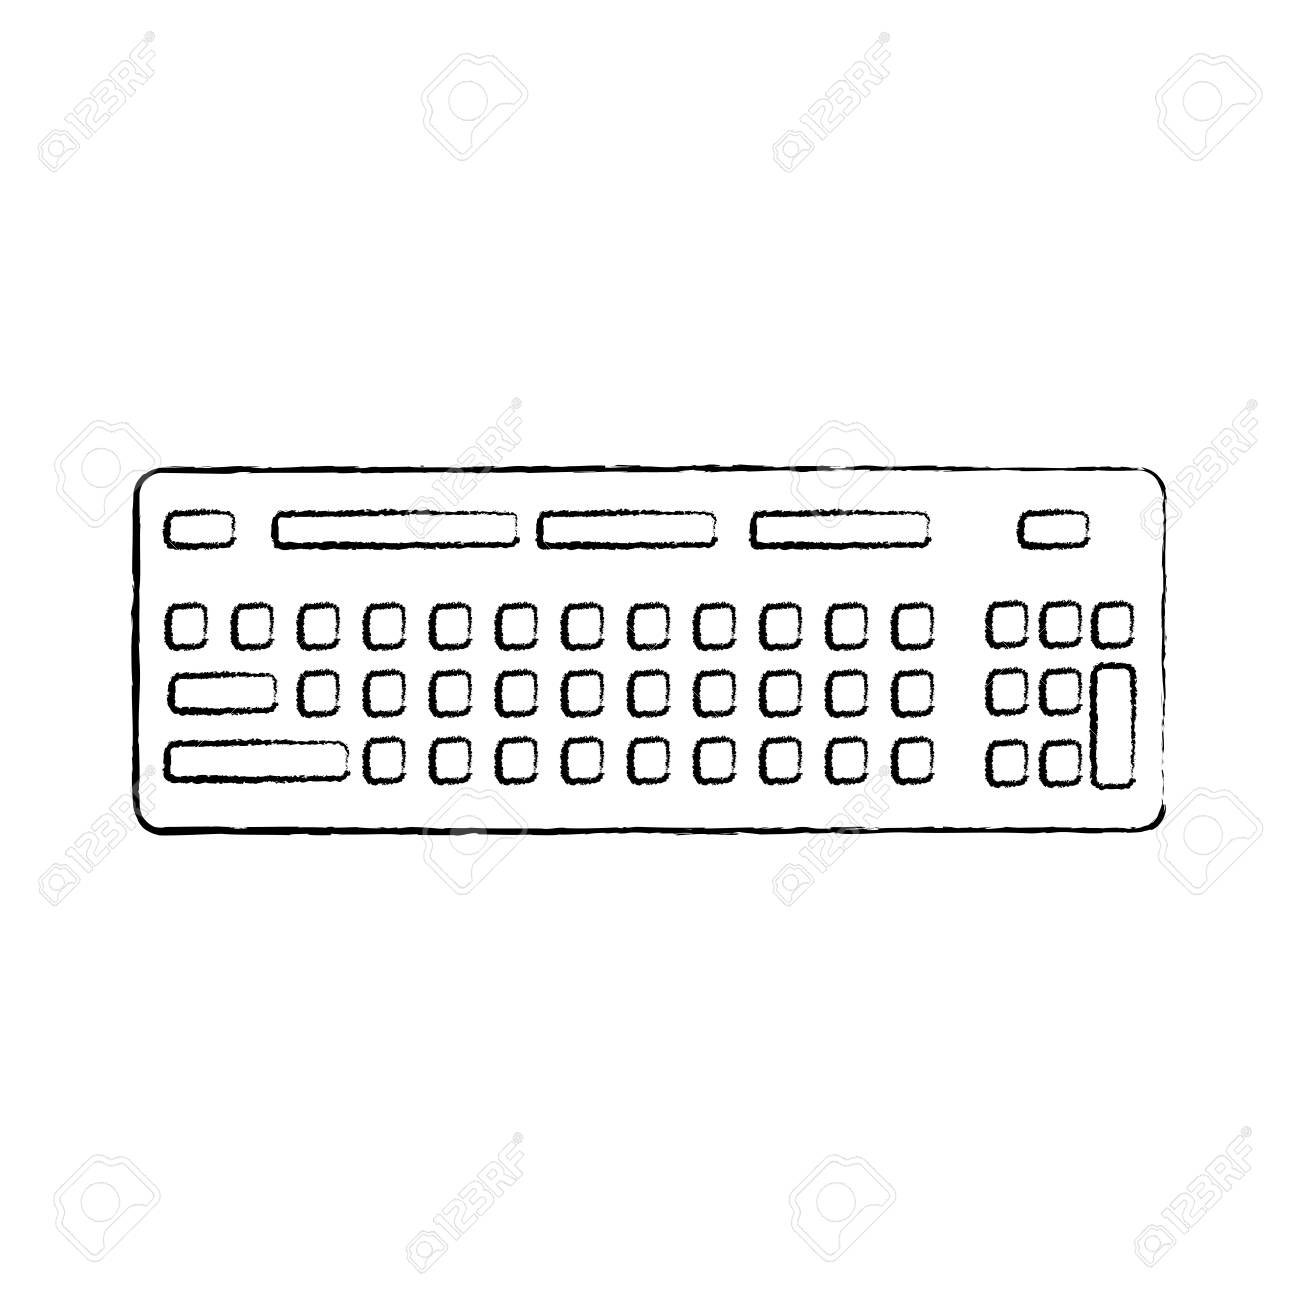 computer keyboard device equipment icon vector illustration sketch